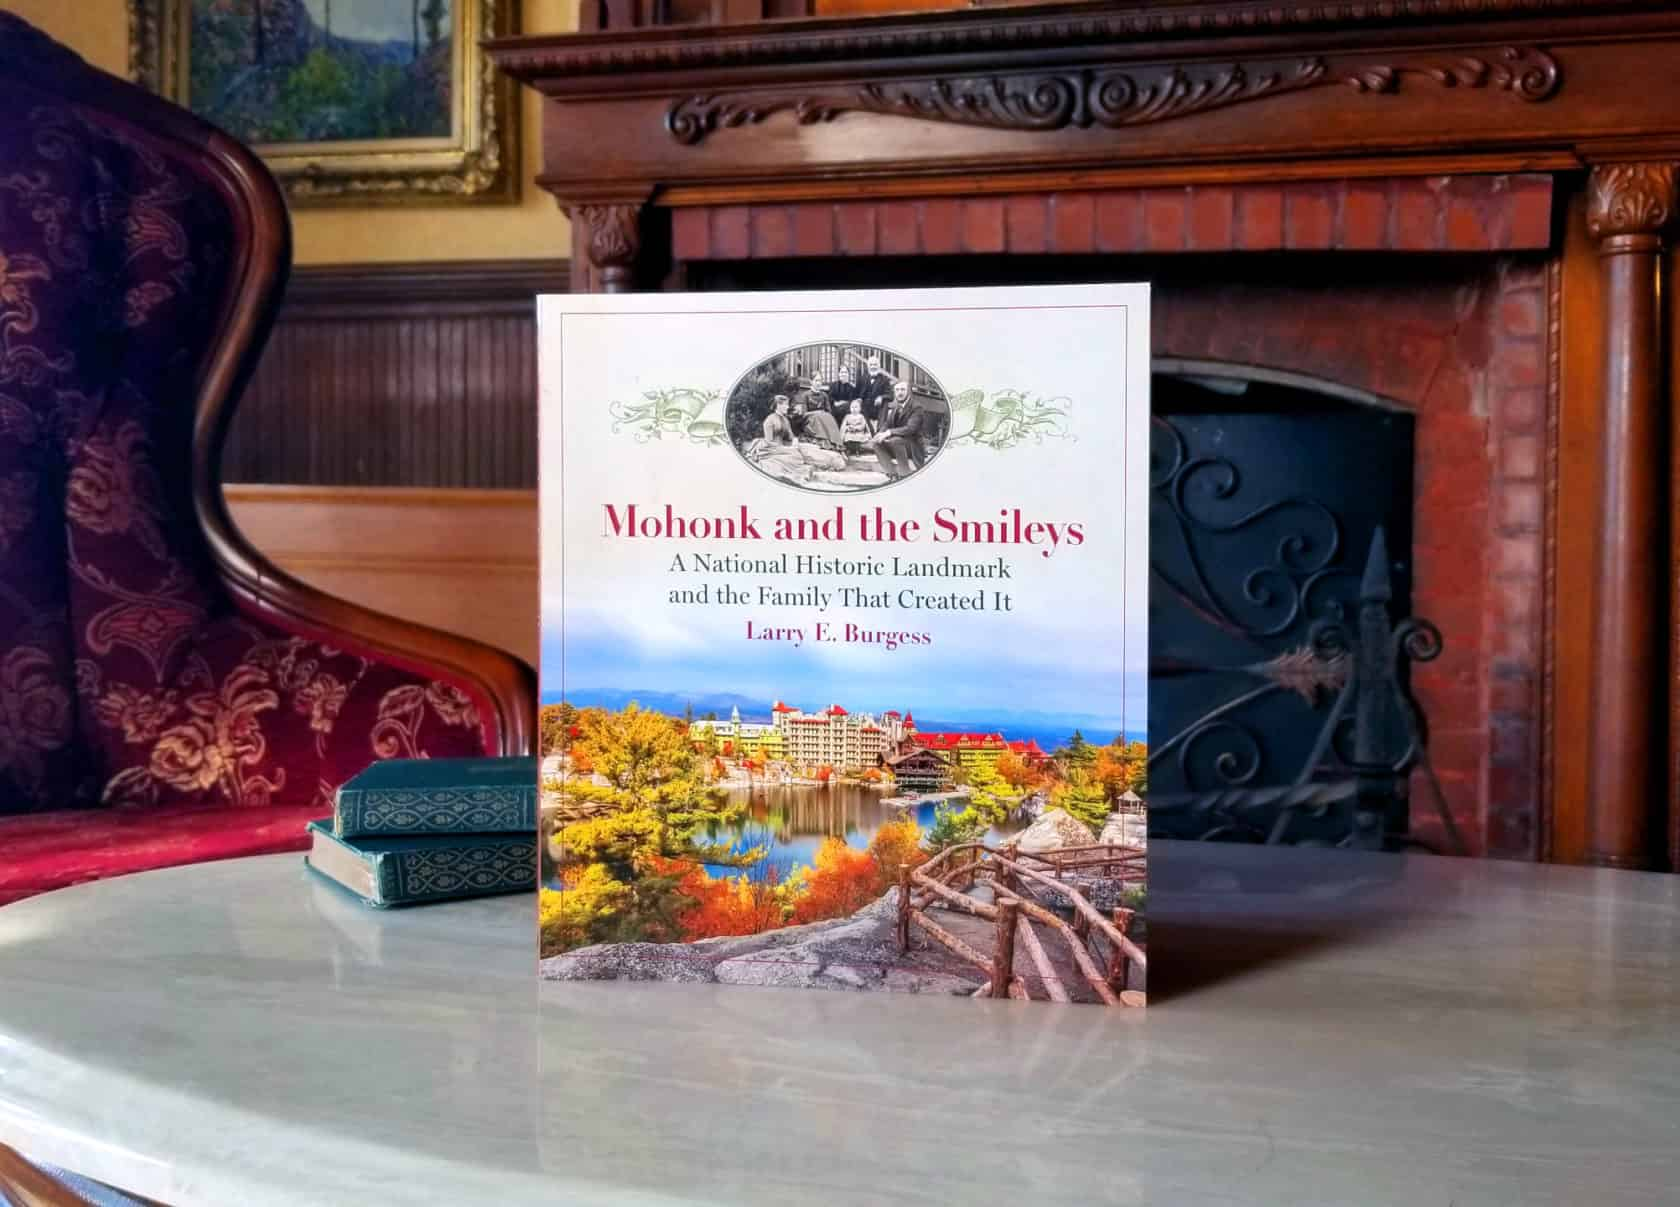 Mohonk and the Smileys Book